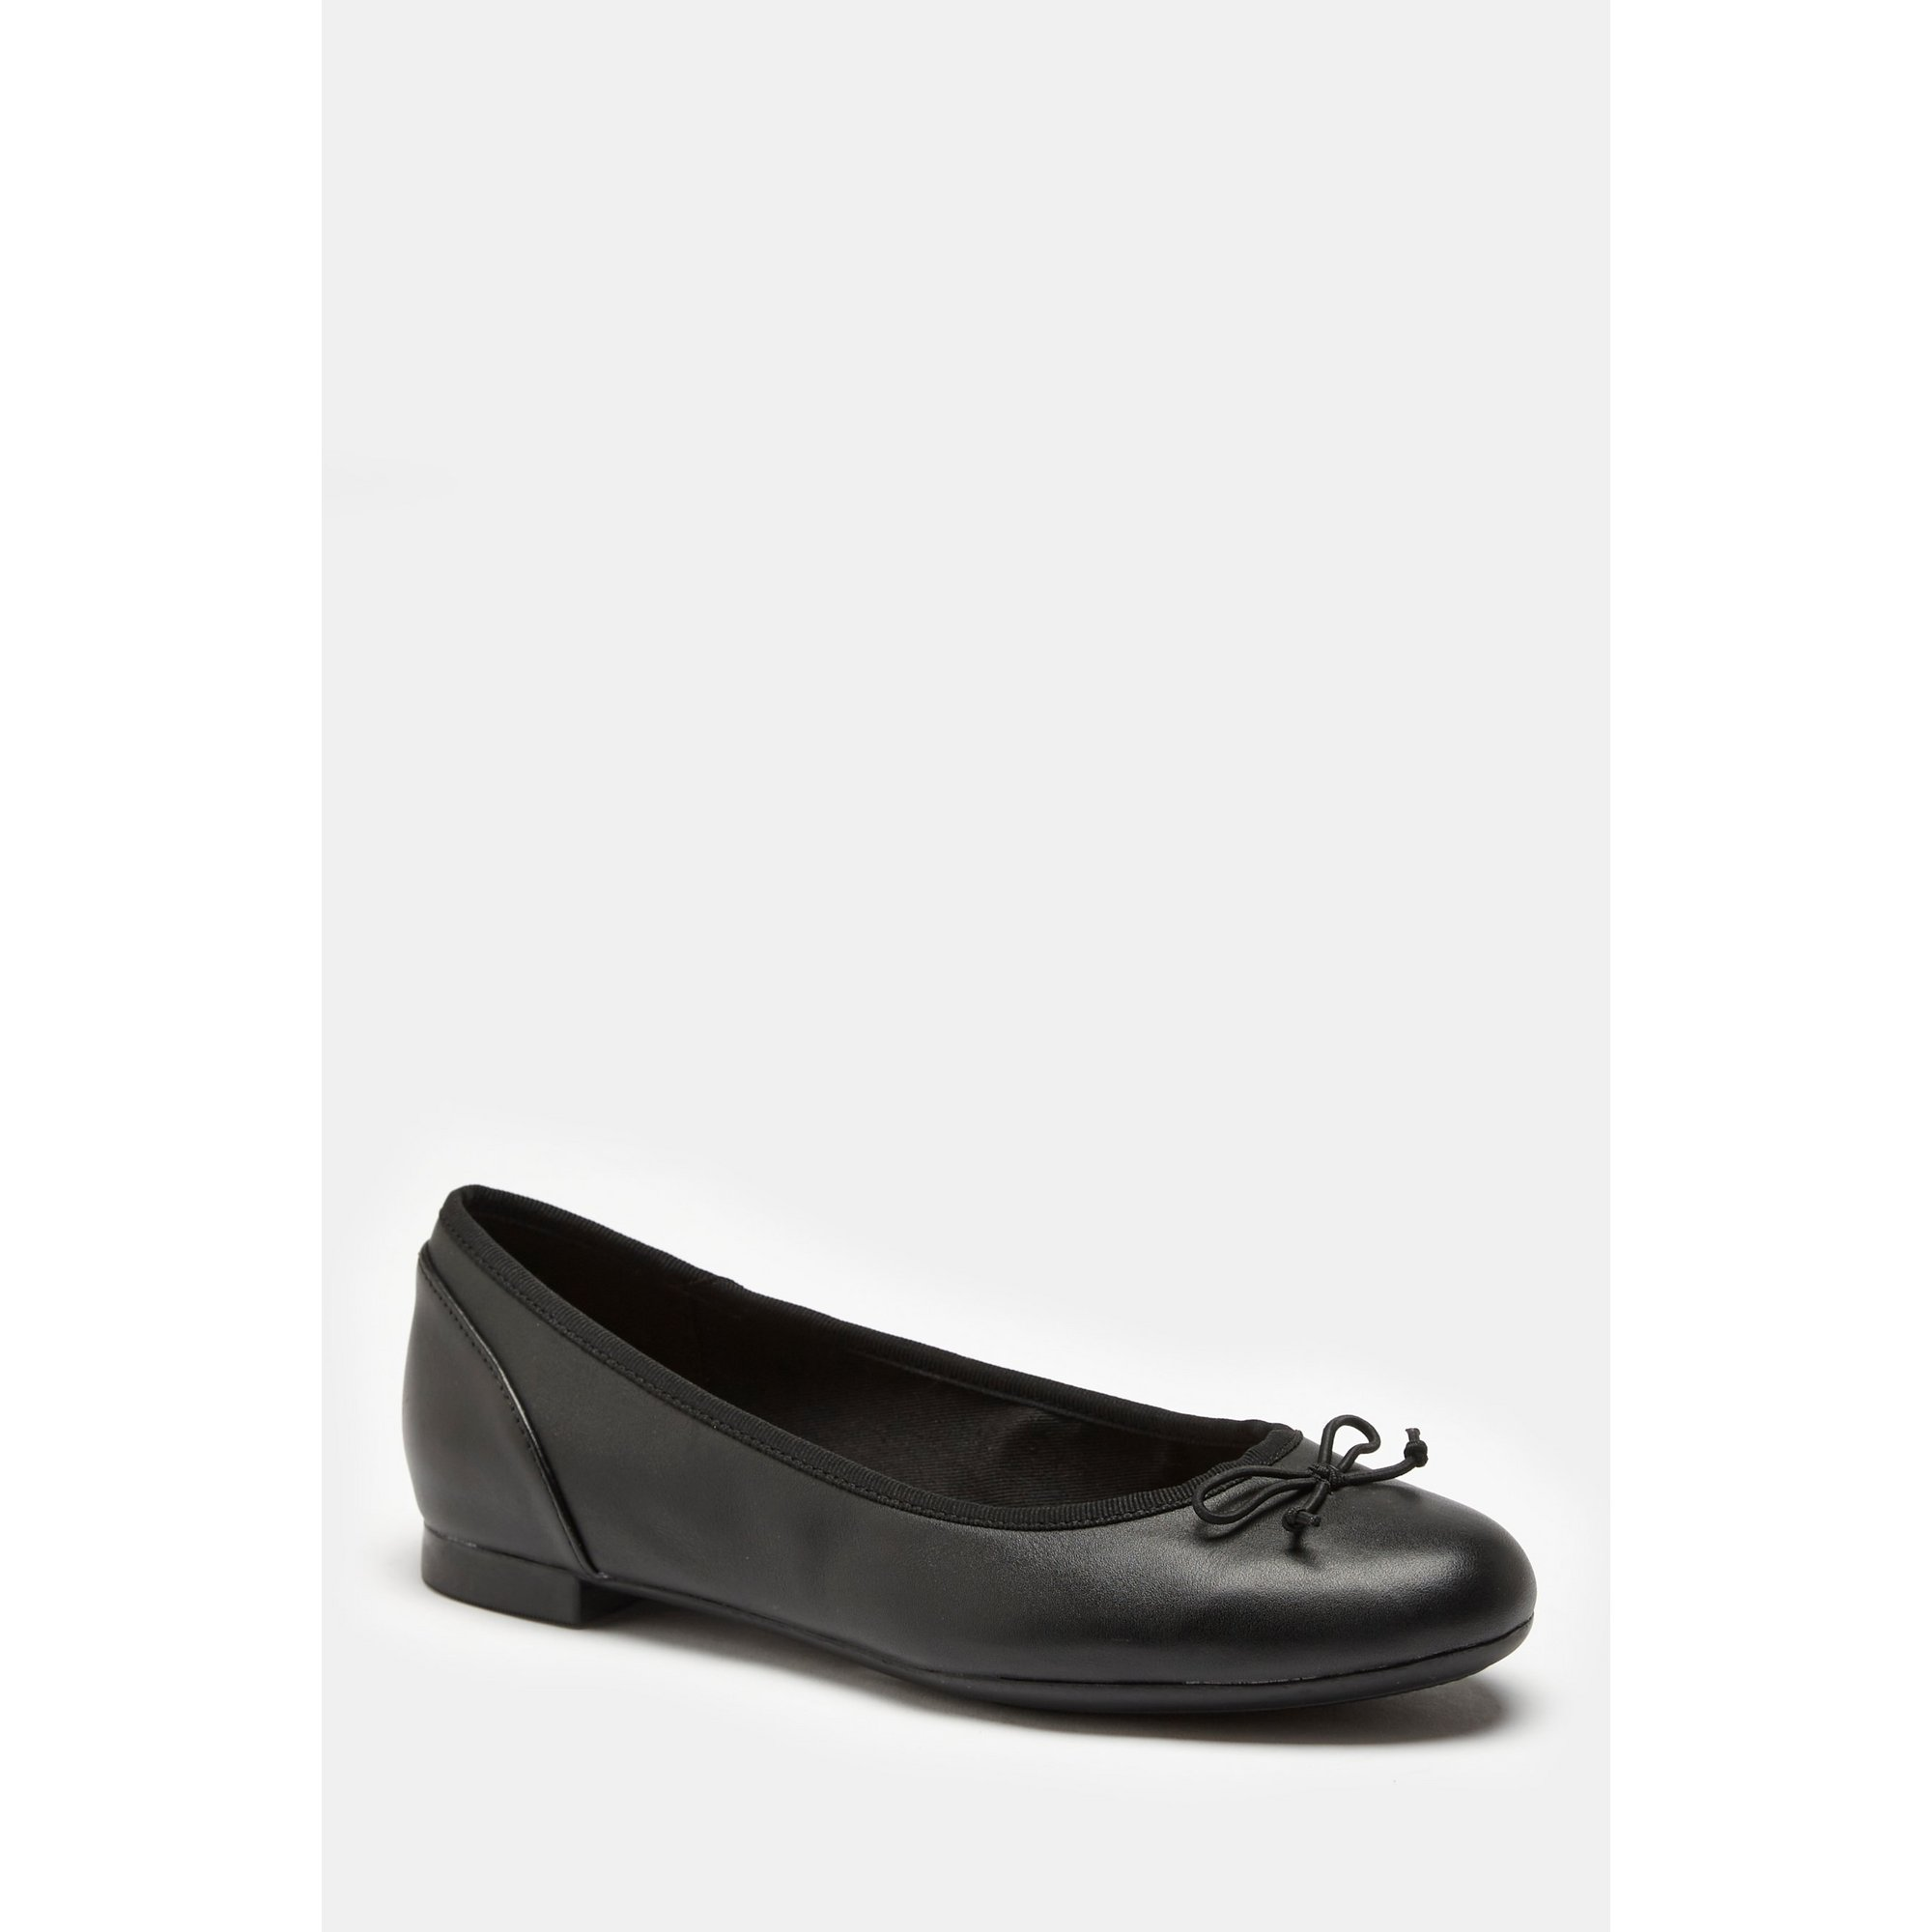 Image of Clarks Couture Black Bloom Shoes